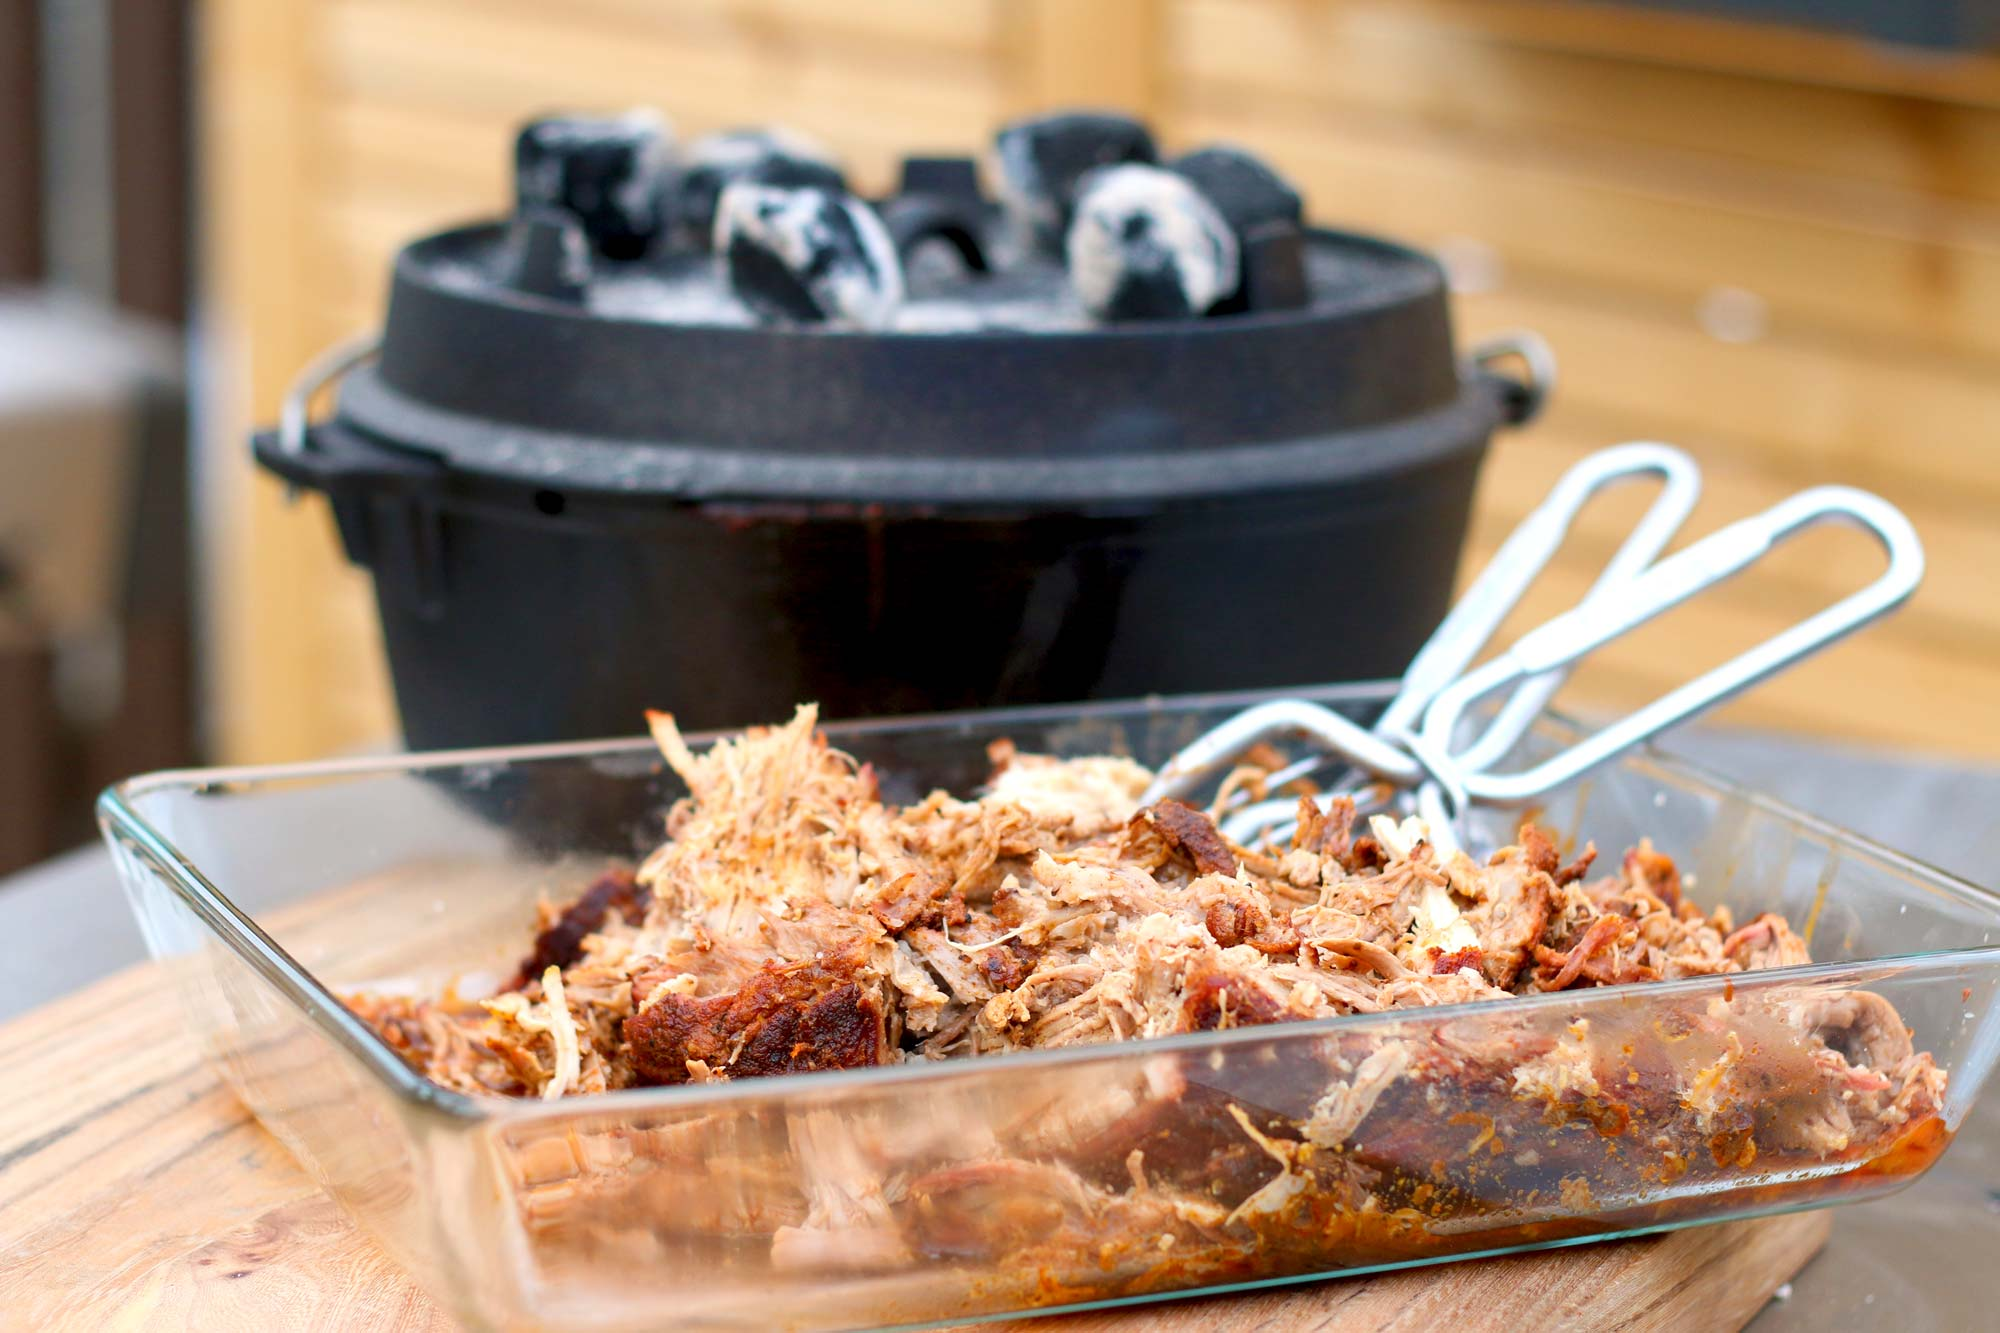 Pulled Pork Gasgrill Temperatur : Pulled pork aus dem dutch oven highspeed pp in h